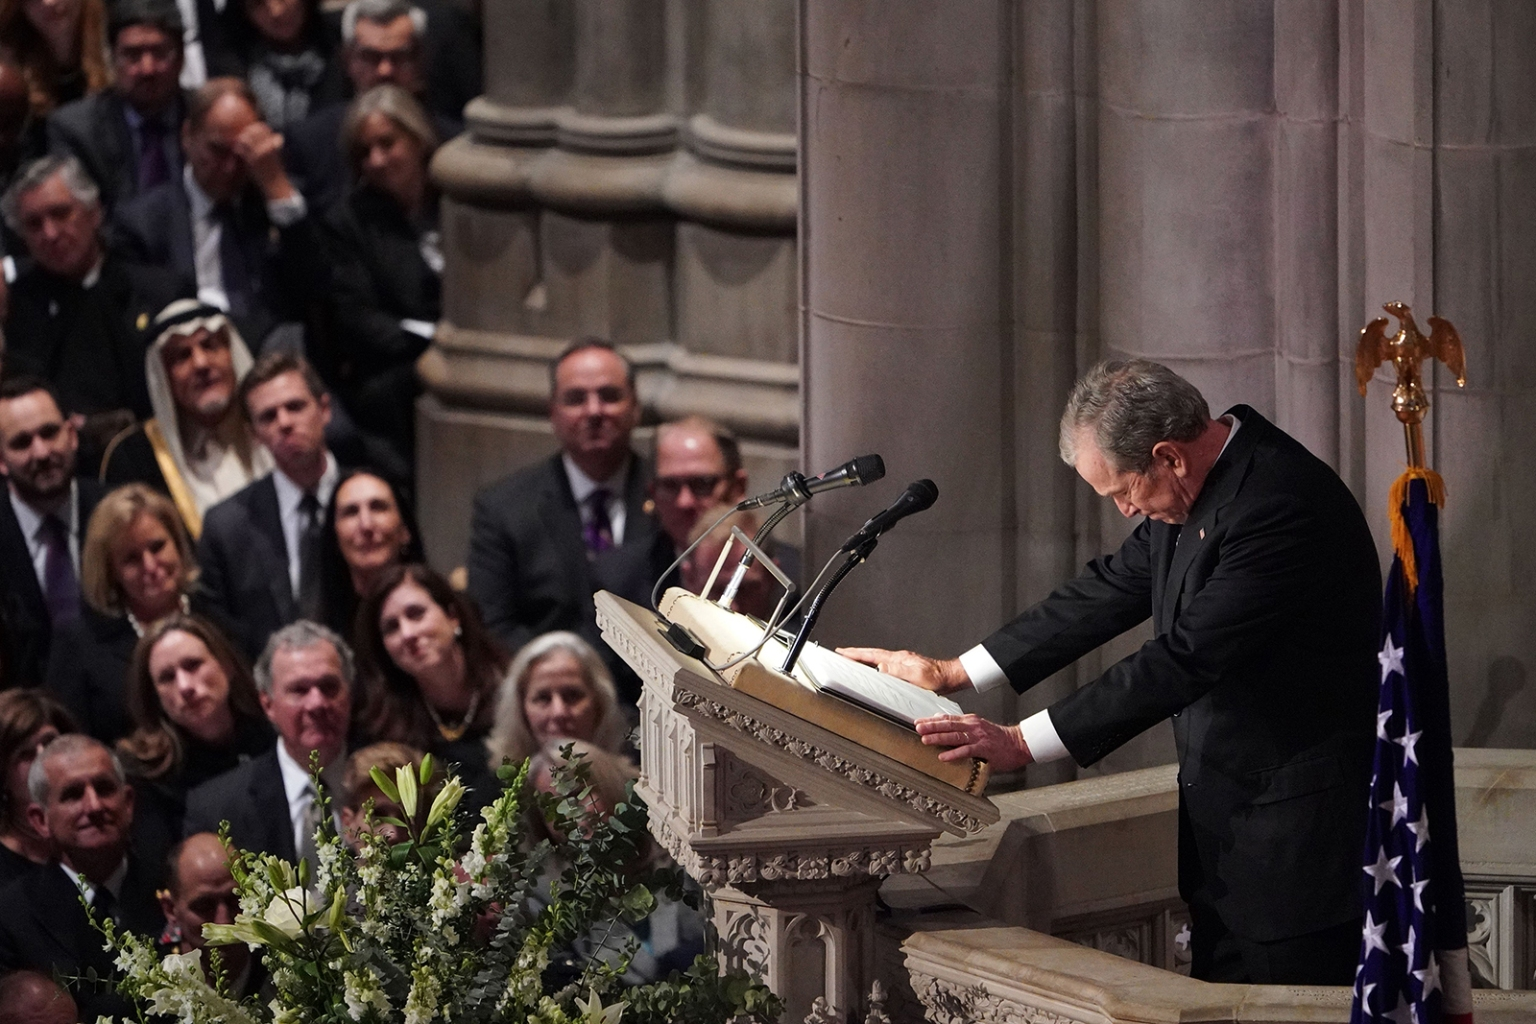 Former U.S. President George W. Bush speaks during the funeral service for former his father, former President George H.W. Bush, at the National Cathedral in Washington on Dec. 5. MANDEL NGAN/AFP/Getty Images